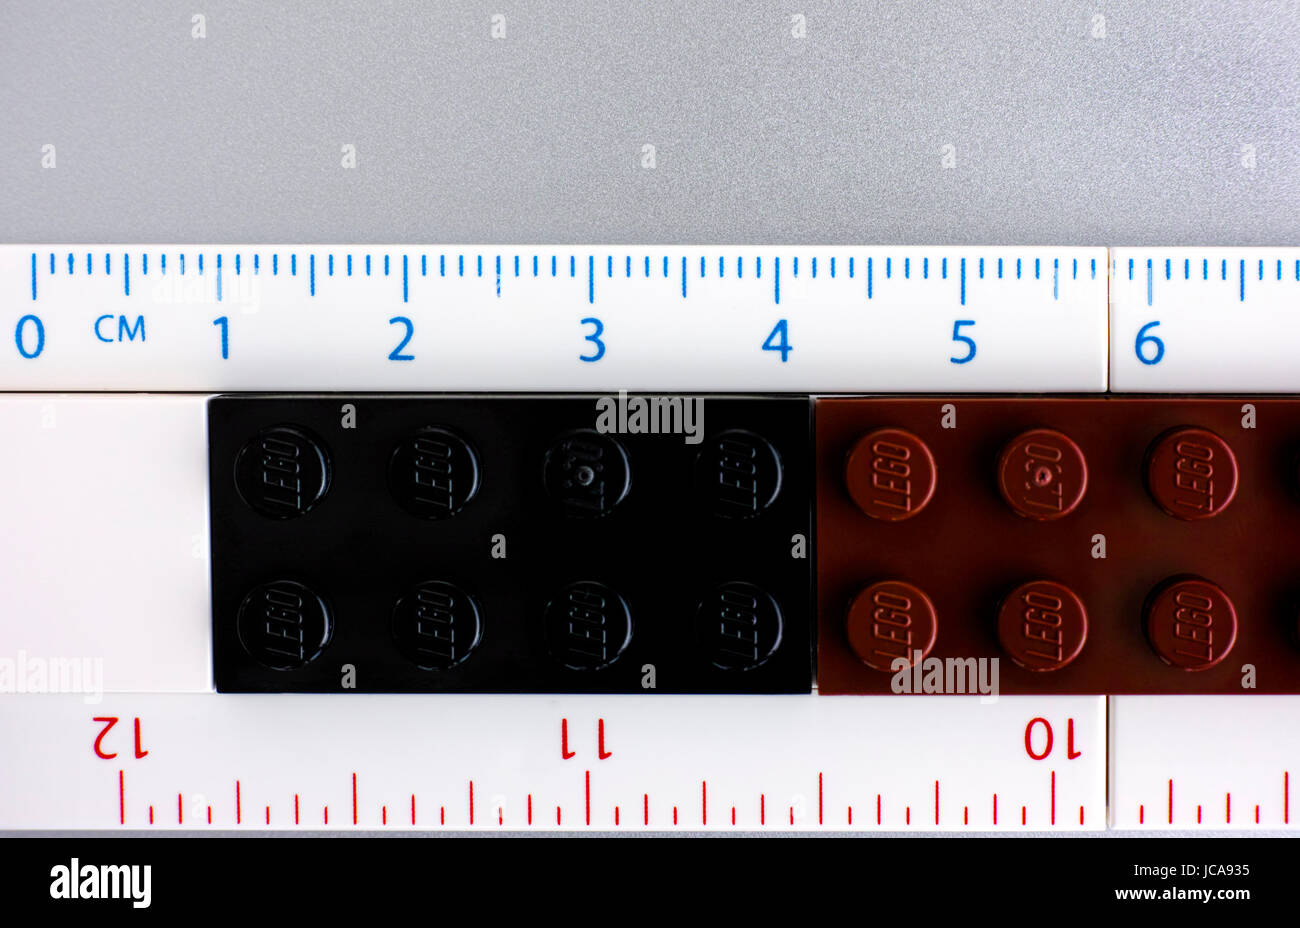 Tambov russian federation may 20 2017 lego ruler with stock tambov russian federation may 20 2017 lego ruler with centimeters inches and buycottarizona